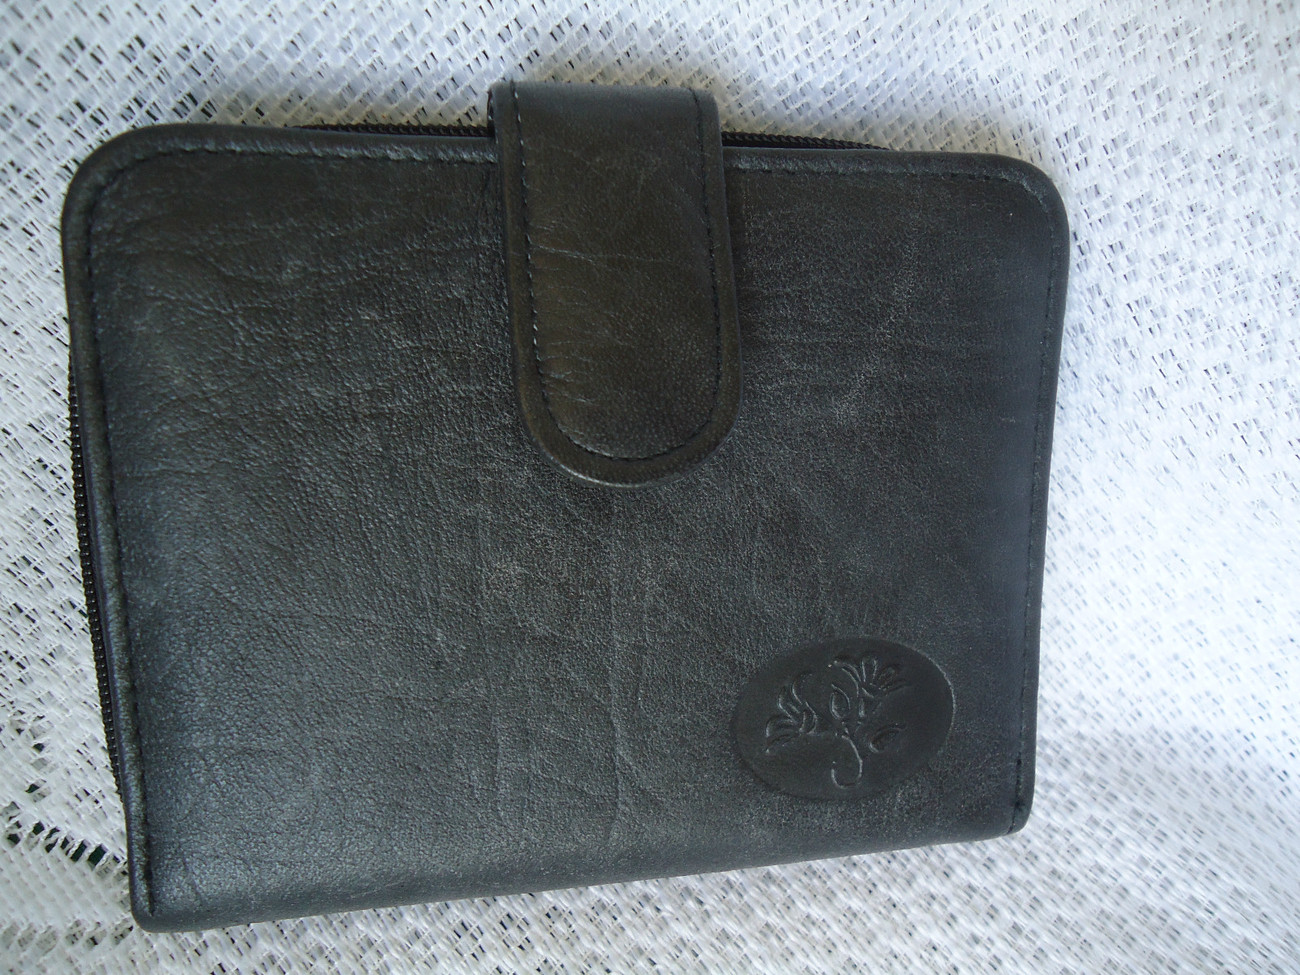 Primary image for BUXTON GENUINE LEATHER EXTERIOR WALLET WITH ID CARD PHOTO & COIN CASE